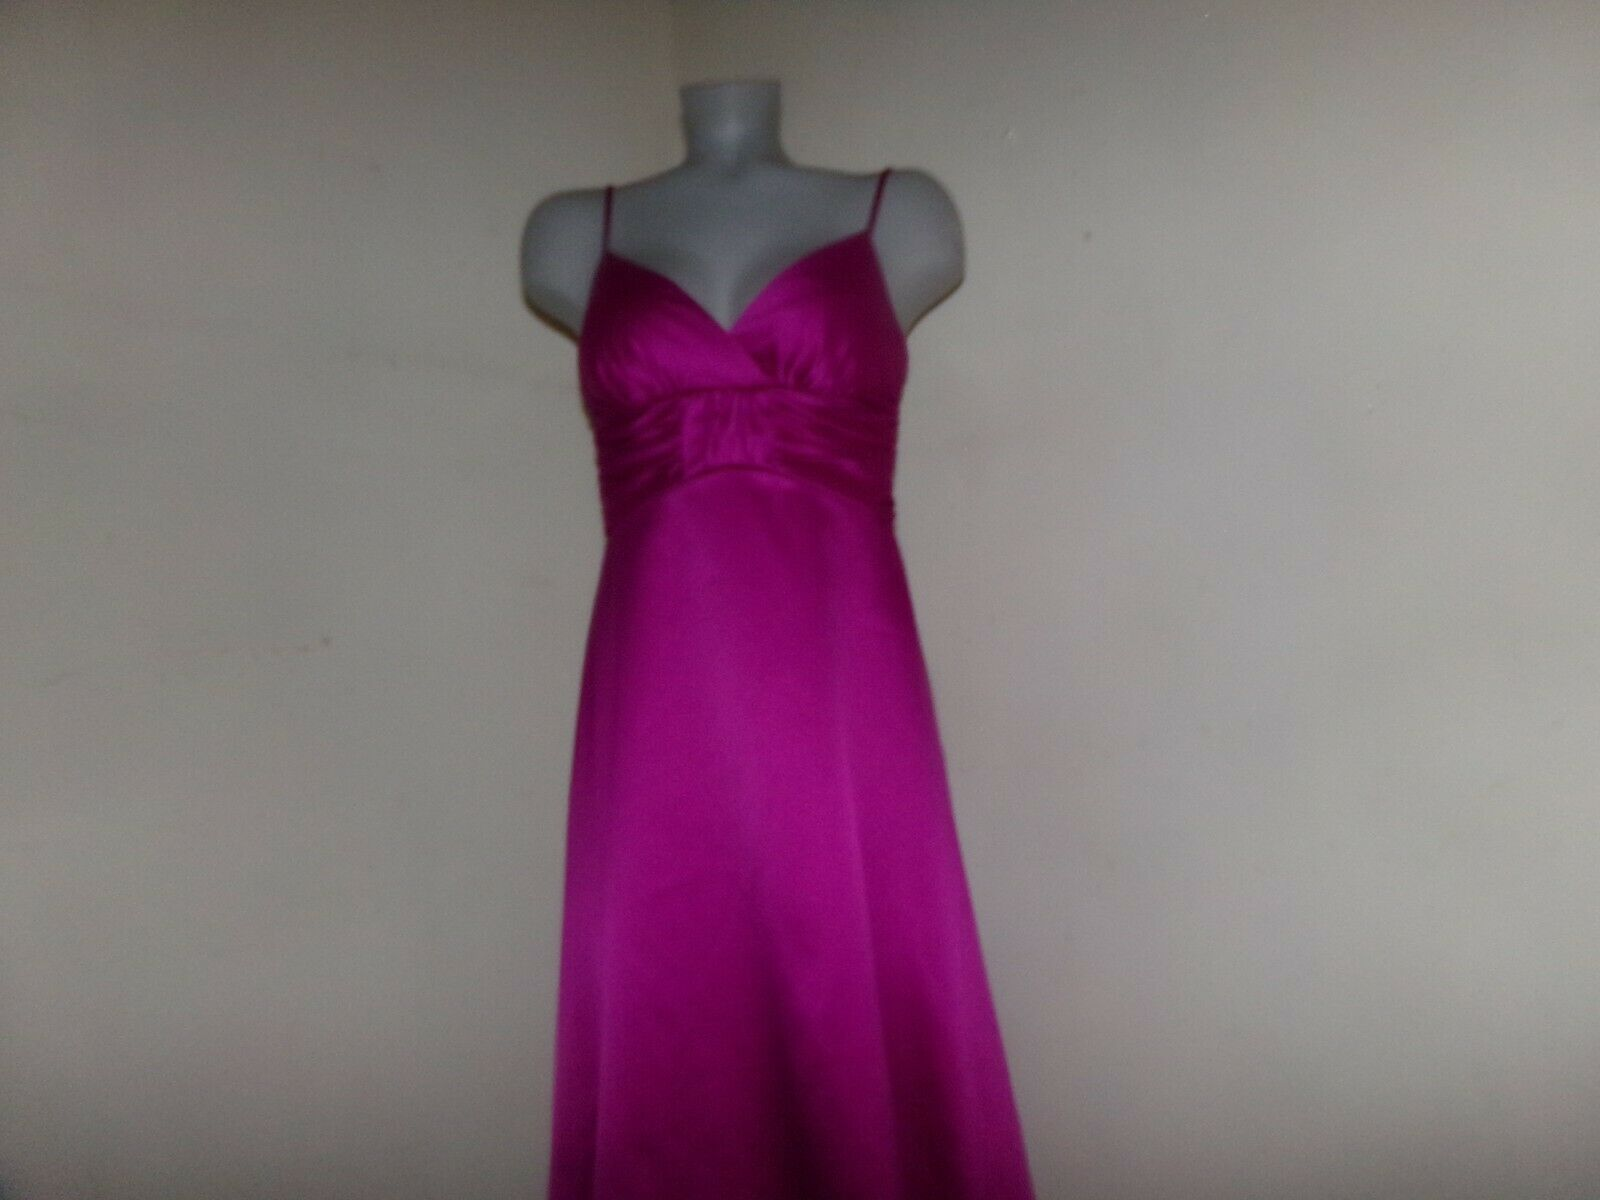 NWT , DONNA MORGAN Women's Raspberry Prom Party Bridesmaid Dress Size 6